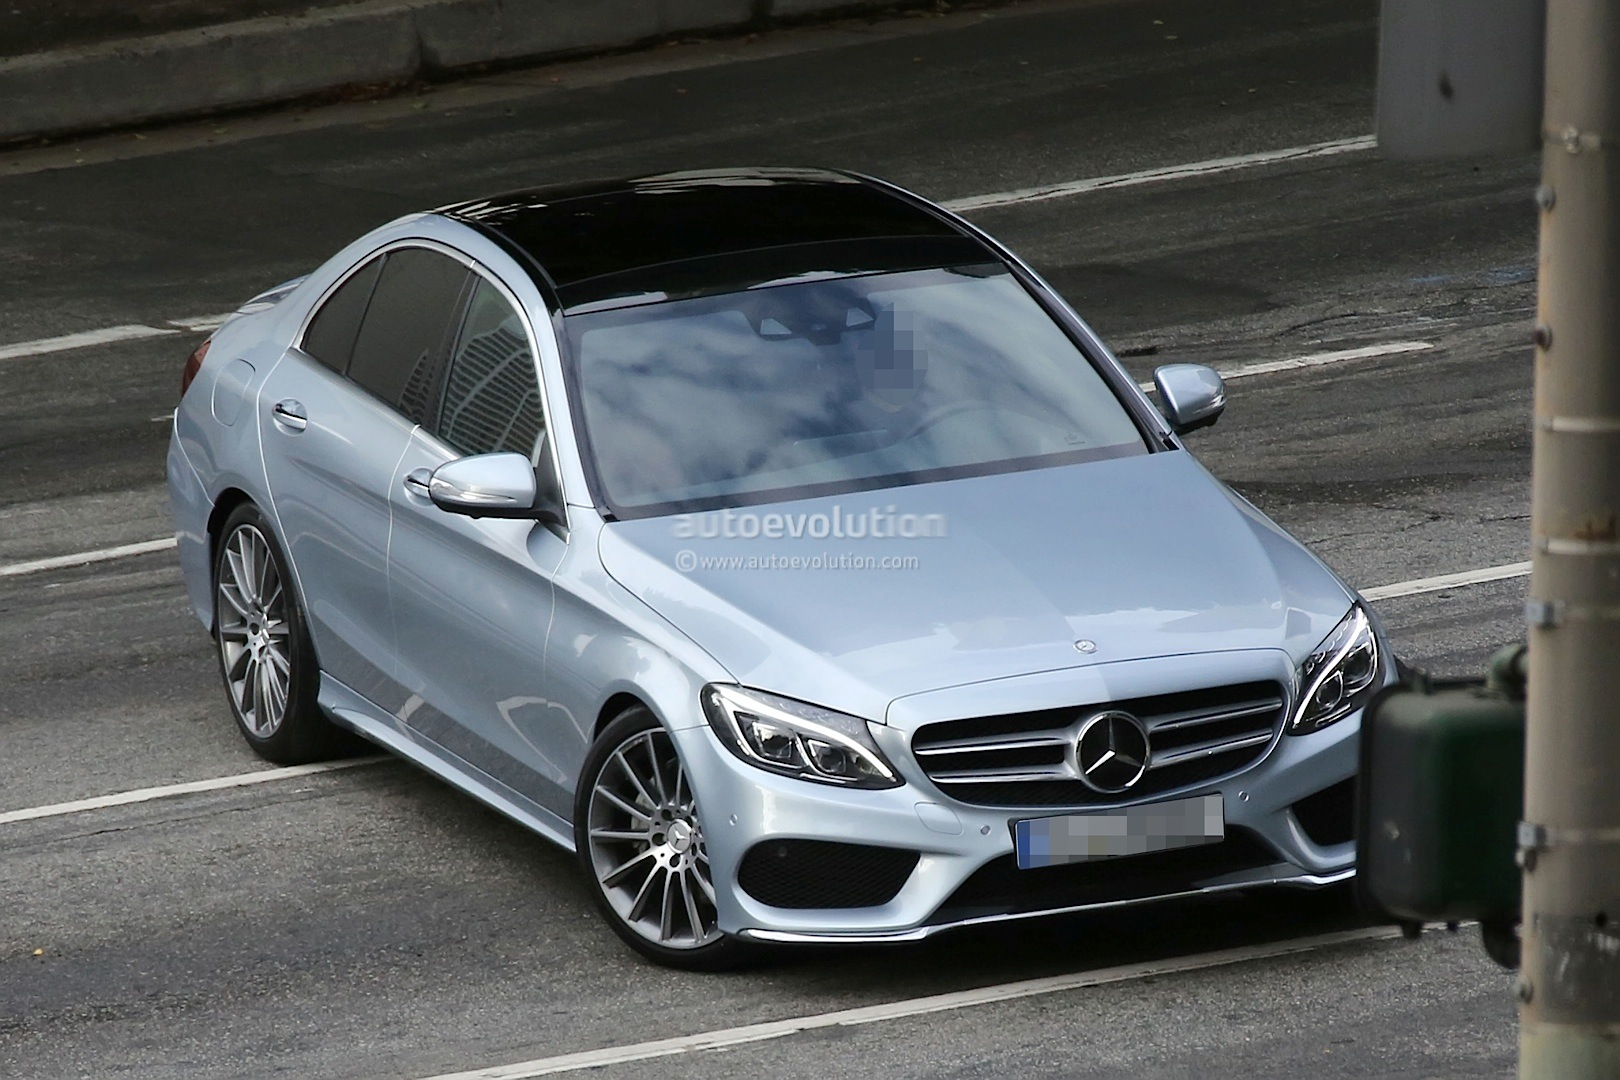 2015 C-Class W205 First Technology Details Leaked - autoevolution